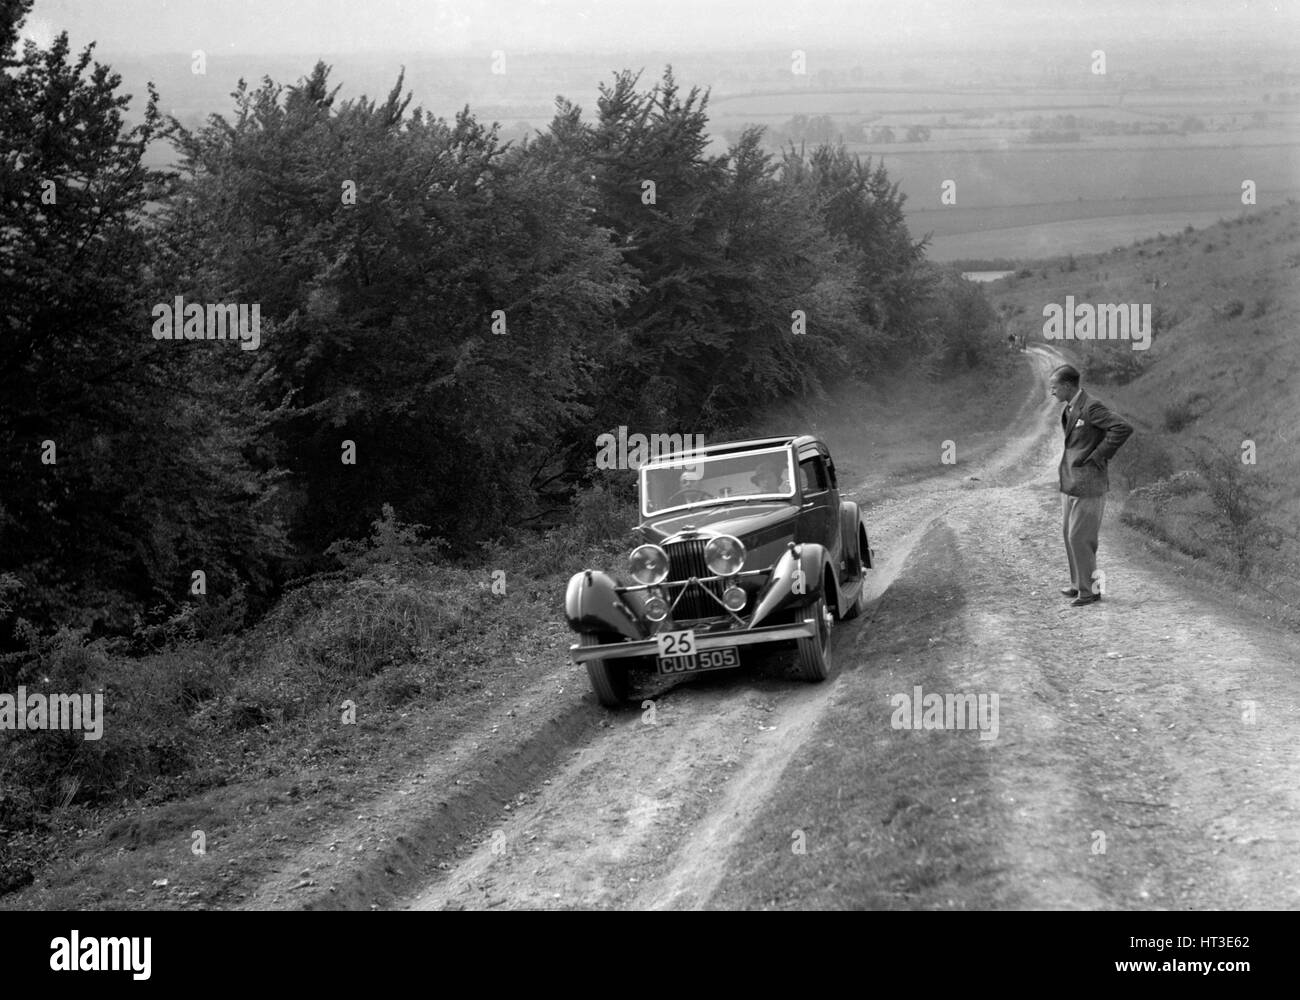 1936 Talbot 105 2969 cc competing in a Talbot CC trial. Artist: Bill Brunell. - Stock Image